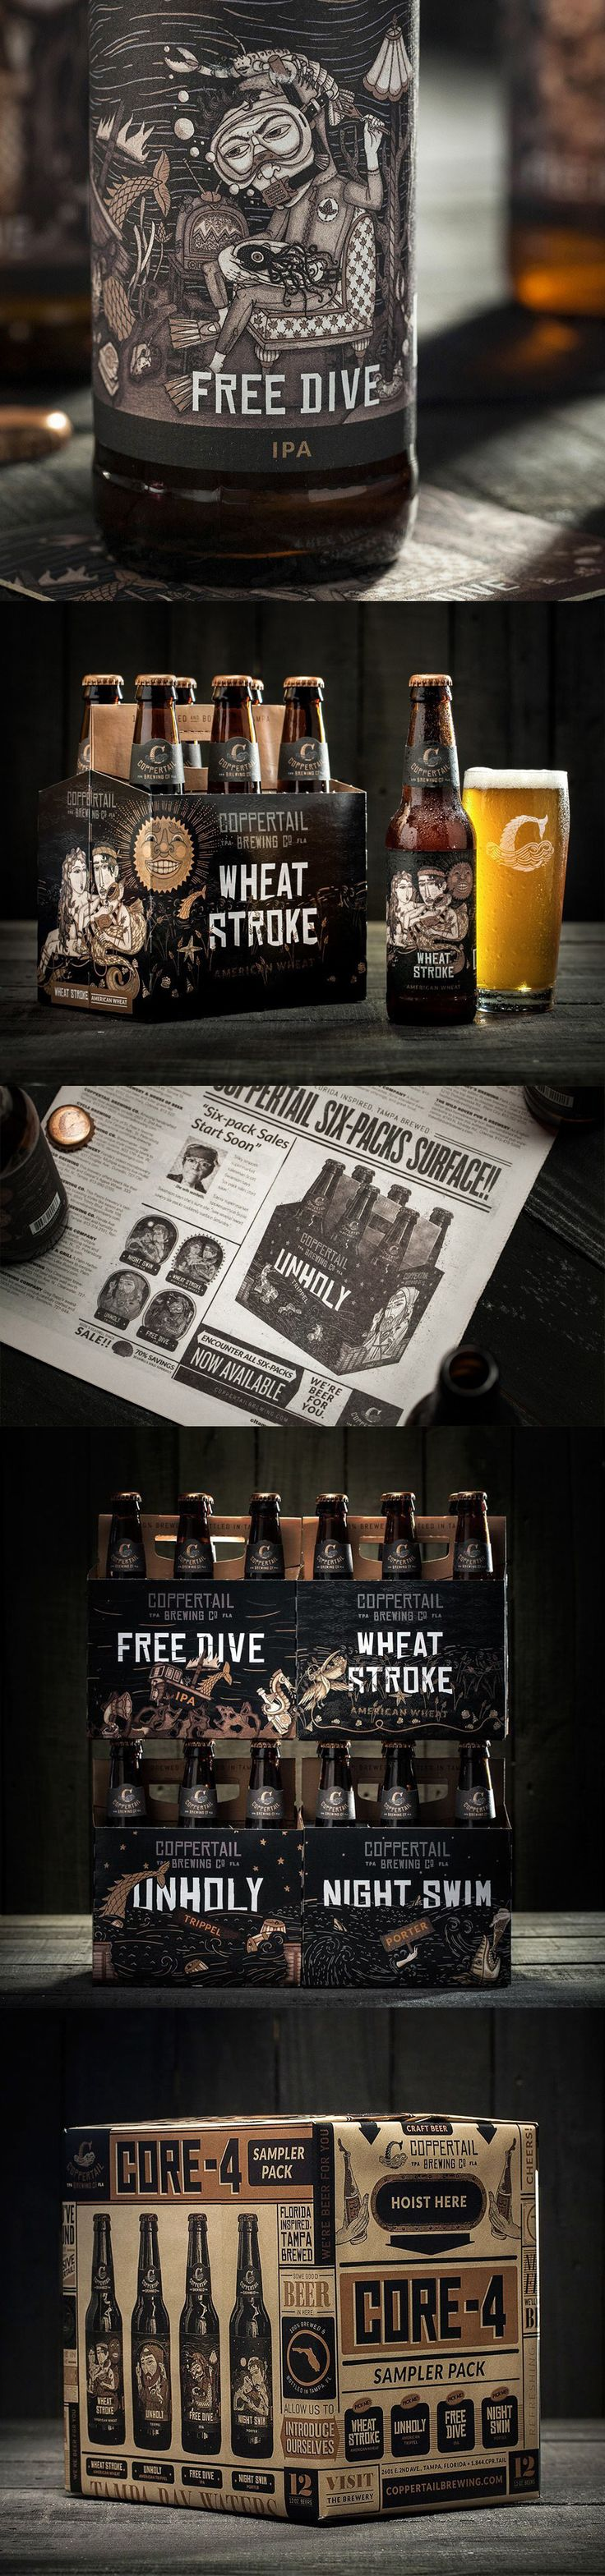 Coppertail Brewing Co. The mysterious sea creature. (More design inspiration at www.aldenchong.com) #branding